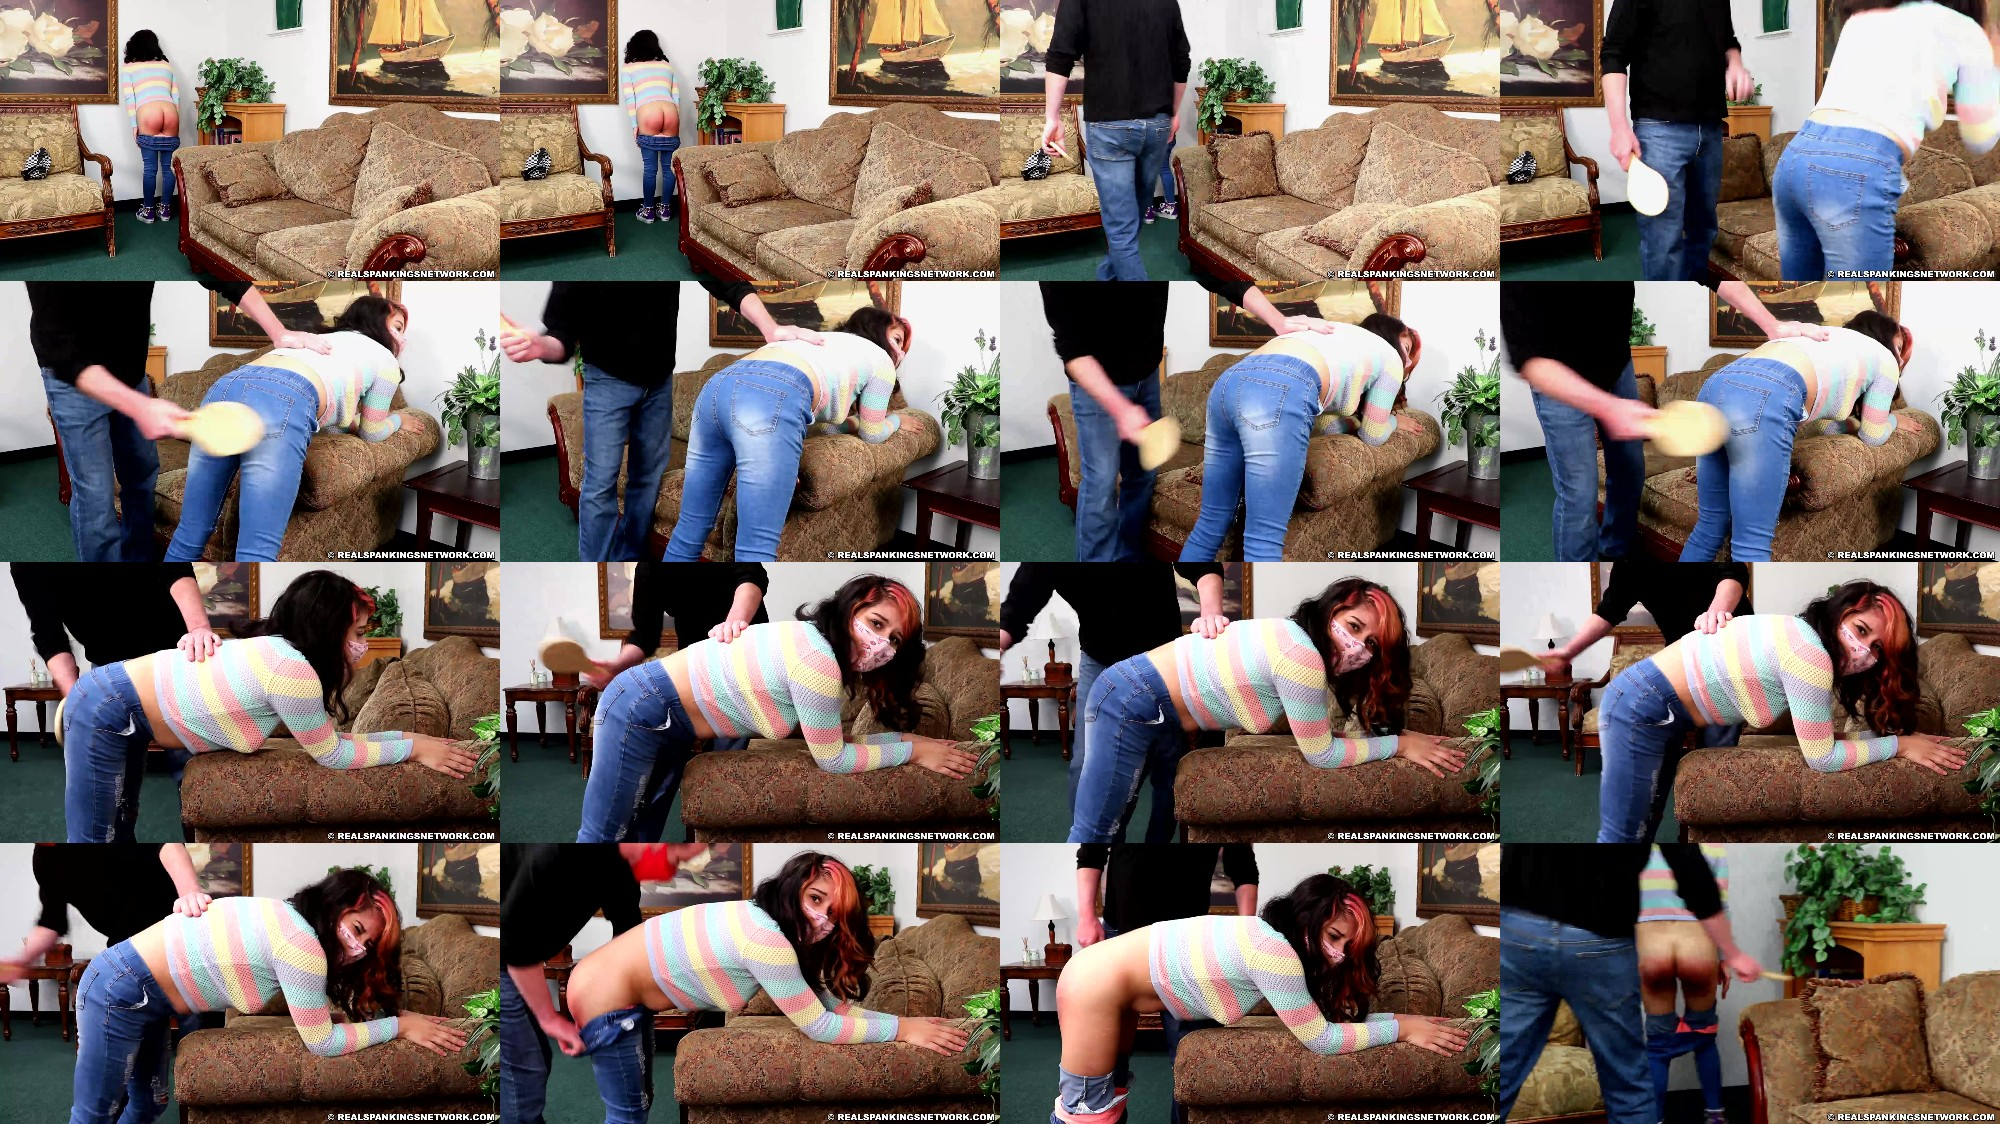 Mona   Mona Lies About Where She Has Been part 2 Of 2 - Real Spankings – MP4/Full HD – Mona - Mona Lies About Where She Has Been (part 2 Of 2) - Bent Over